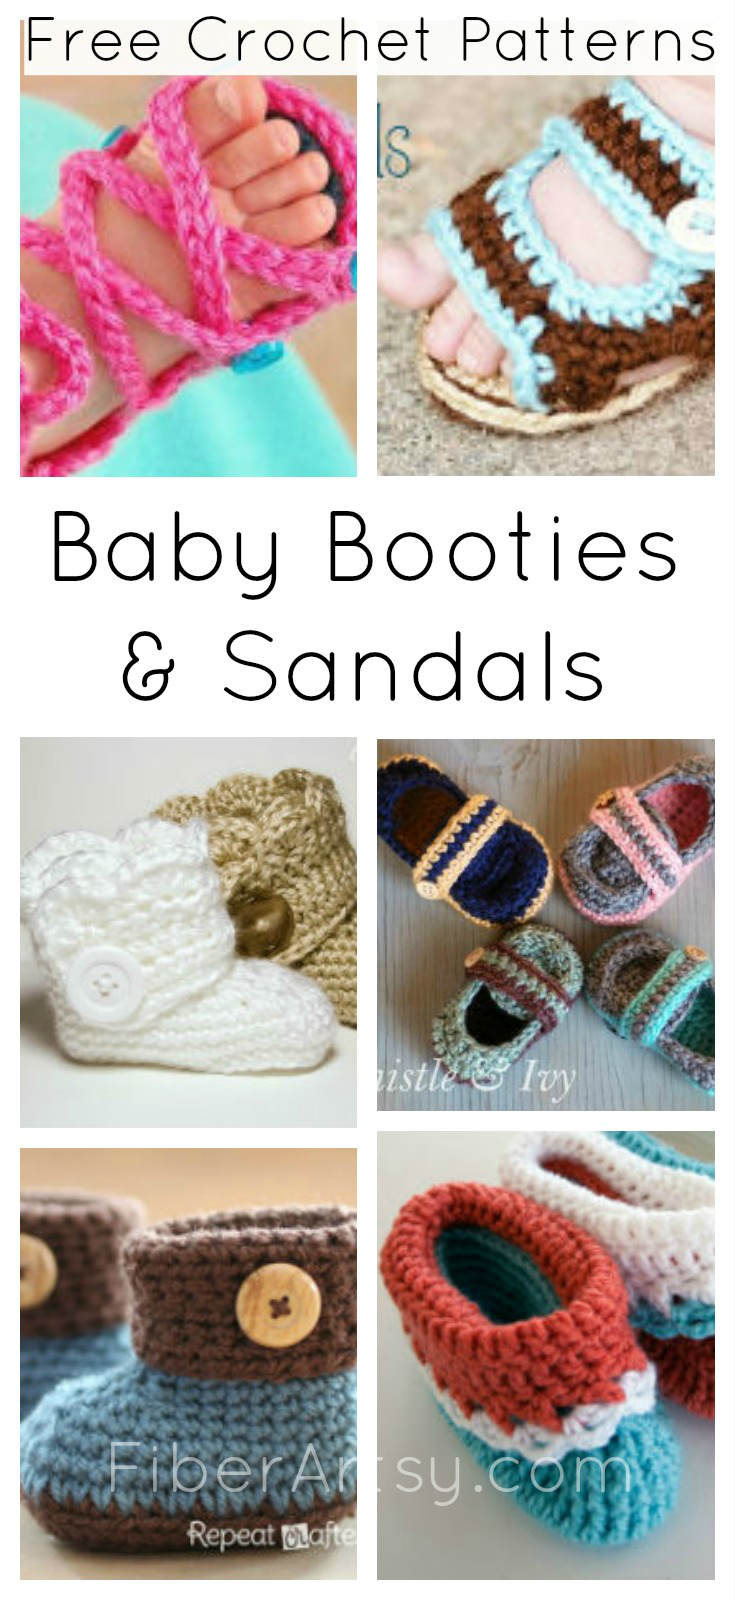 14 Free Crochet Patterns for Baby Booties - FiberArtsy.com